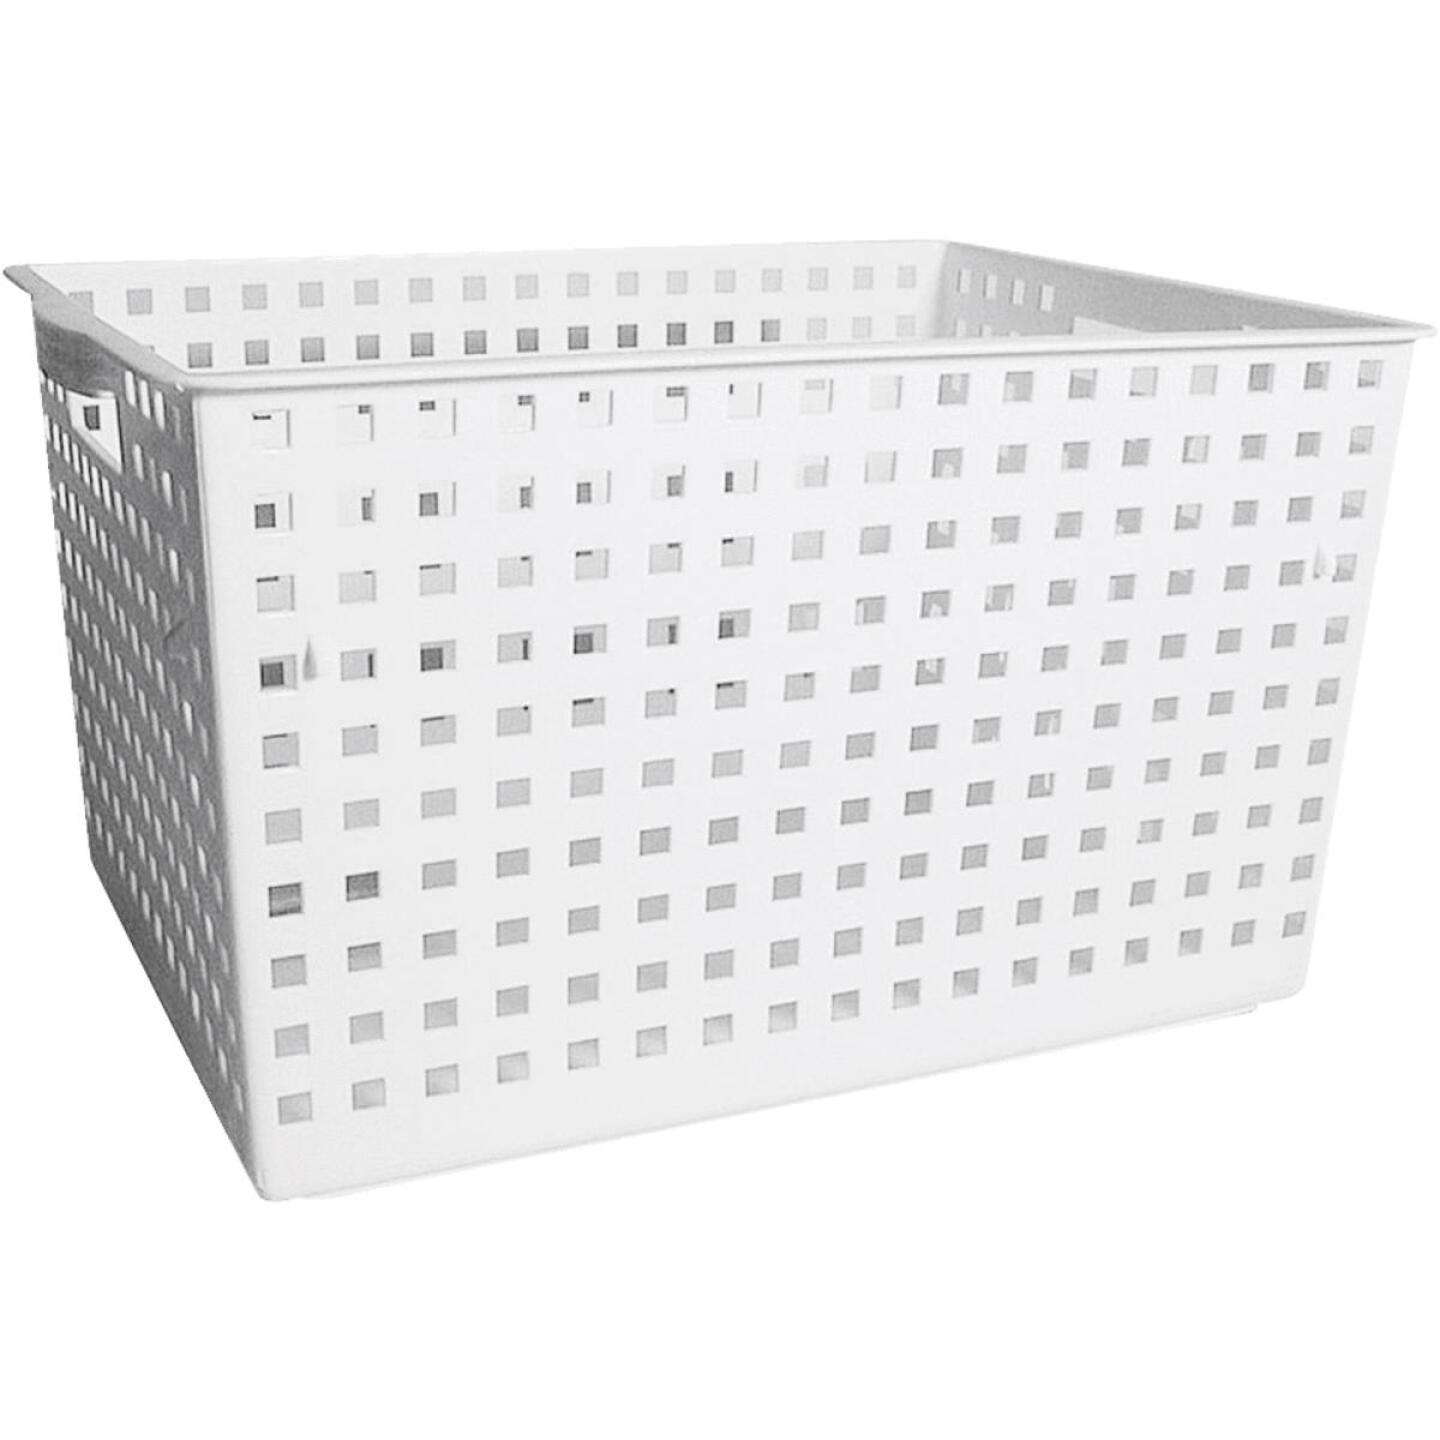 InterDesign Modulon X8 Storage Basket Image 1